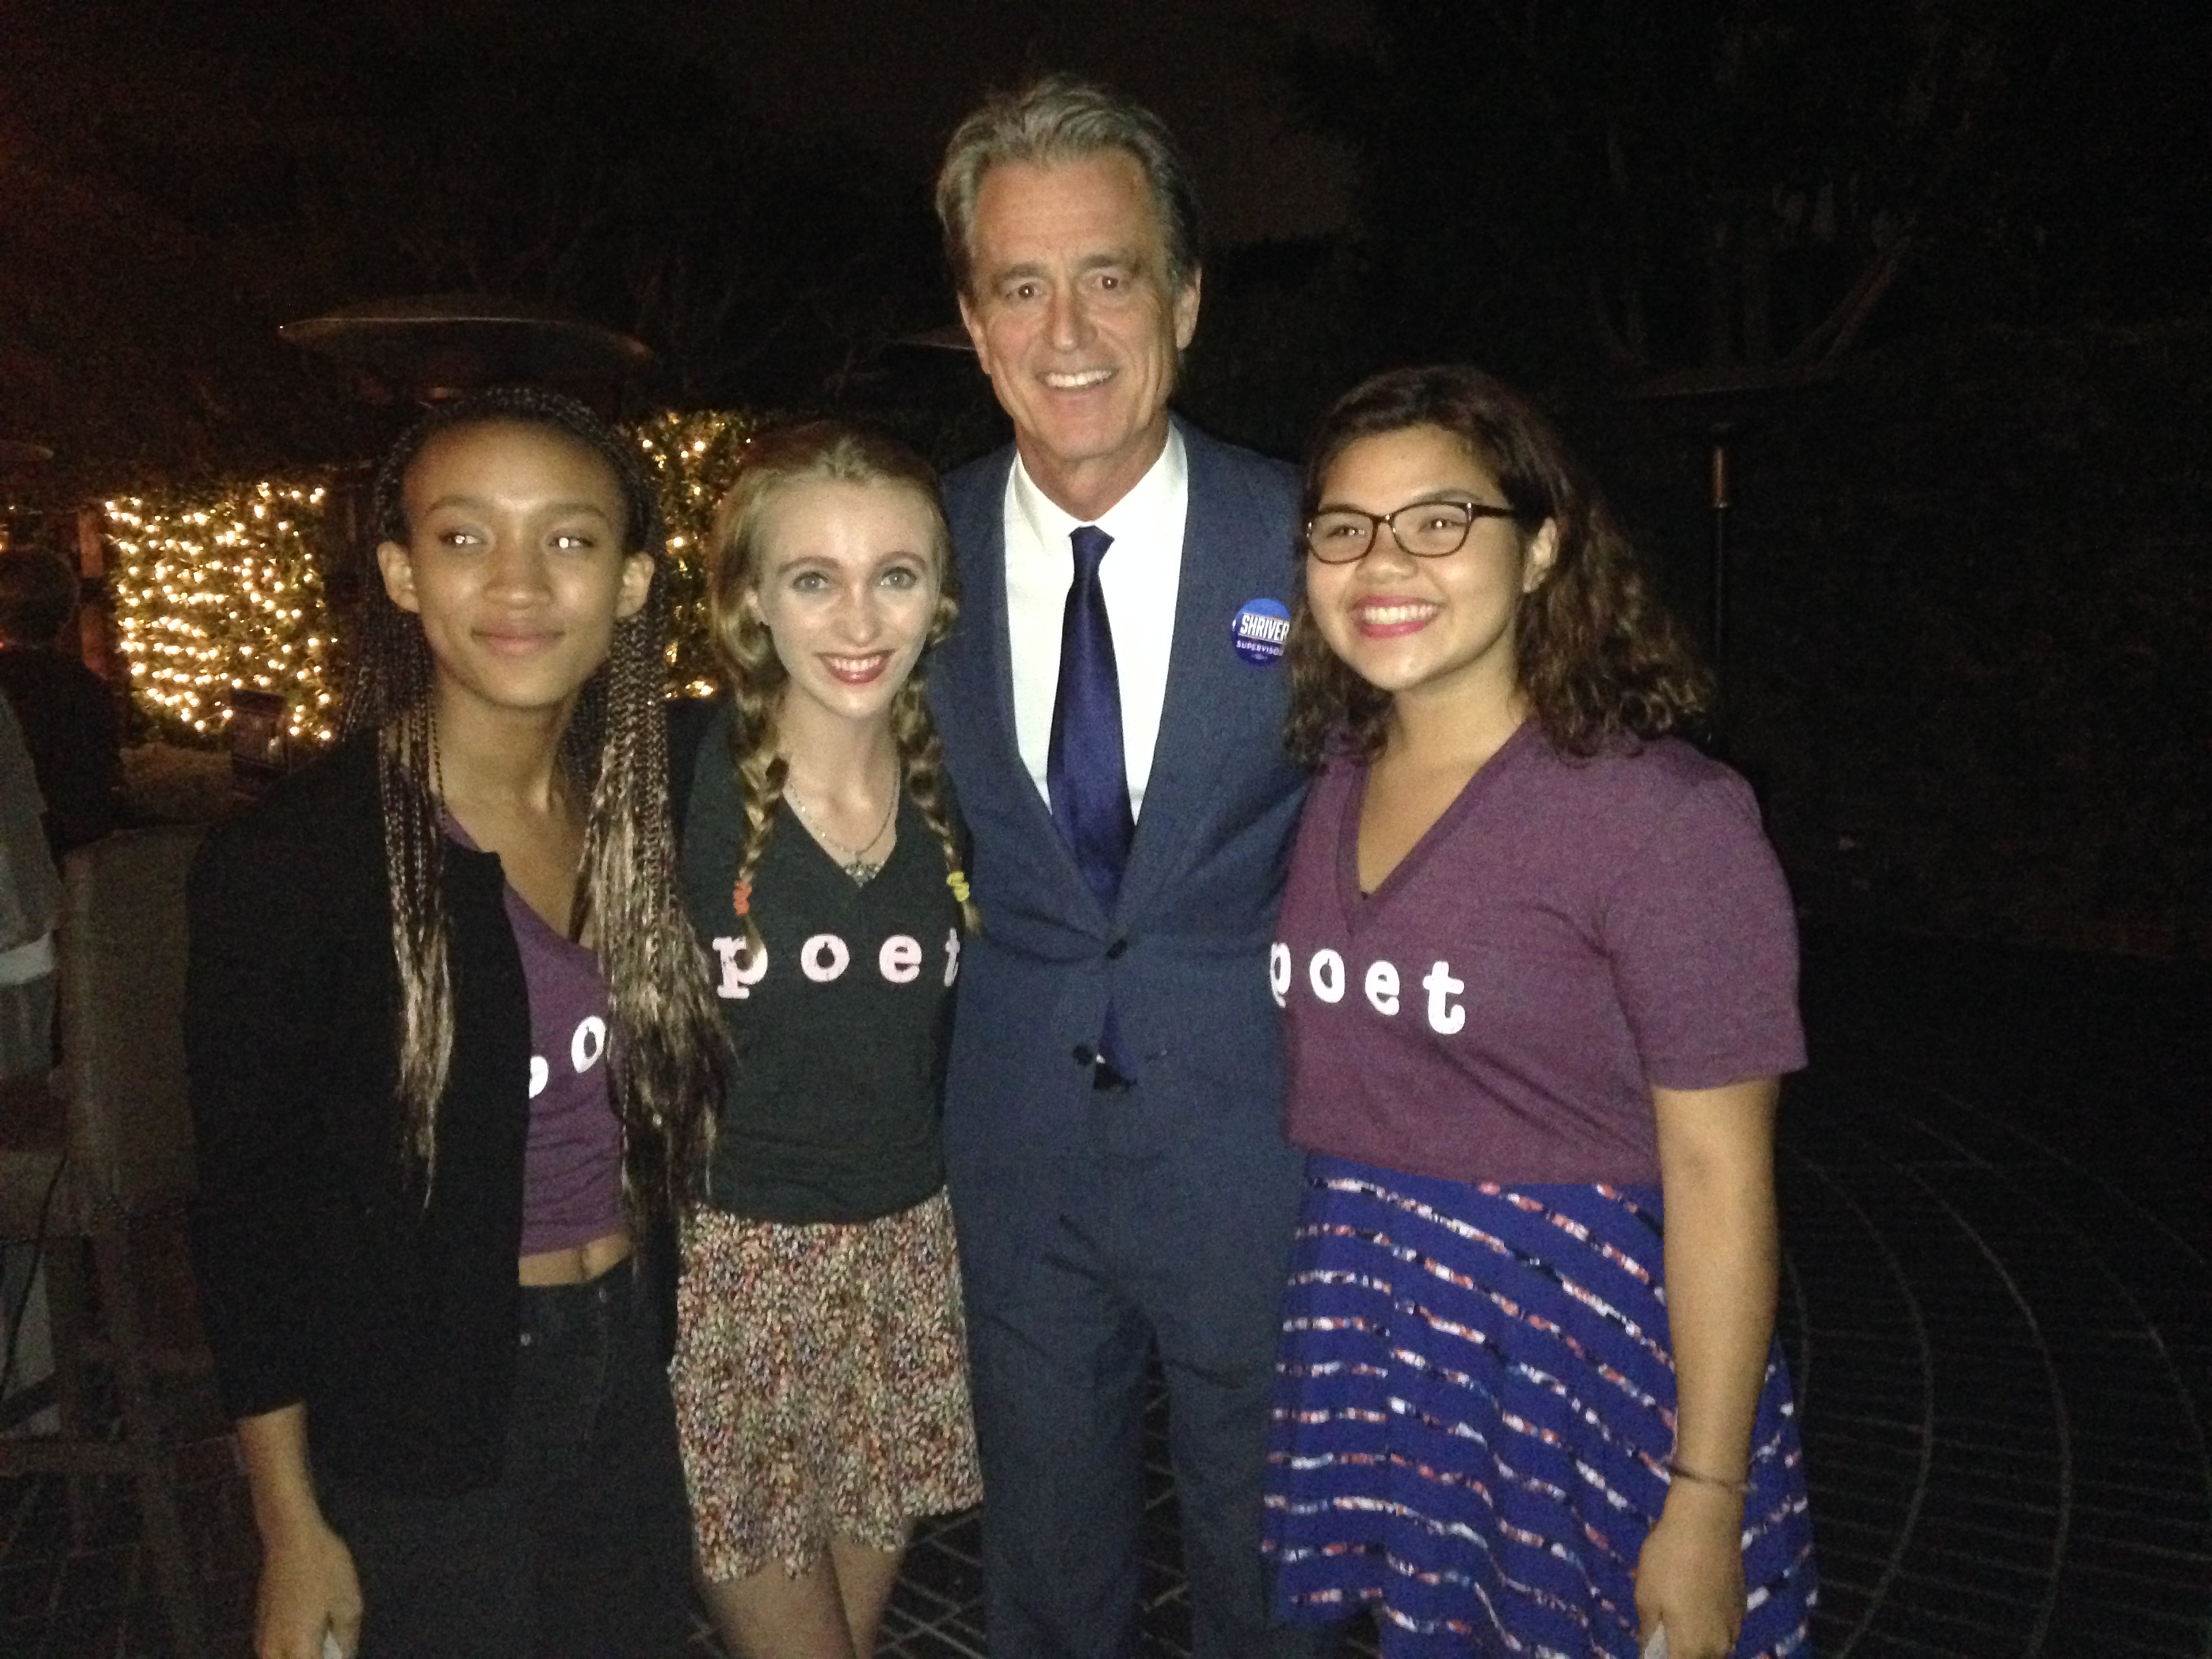 bobby shriver and girls.JPG